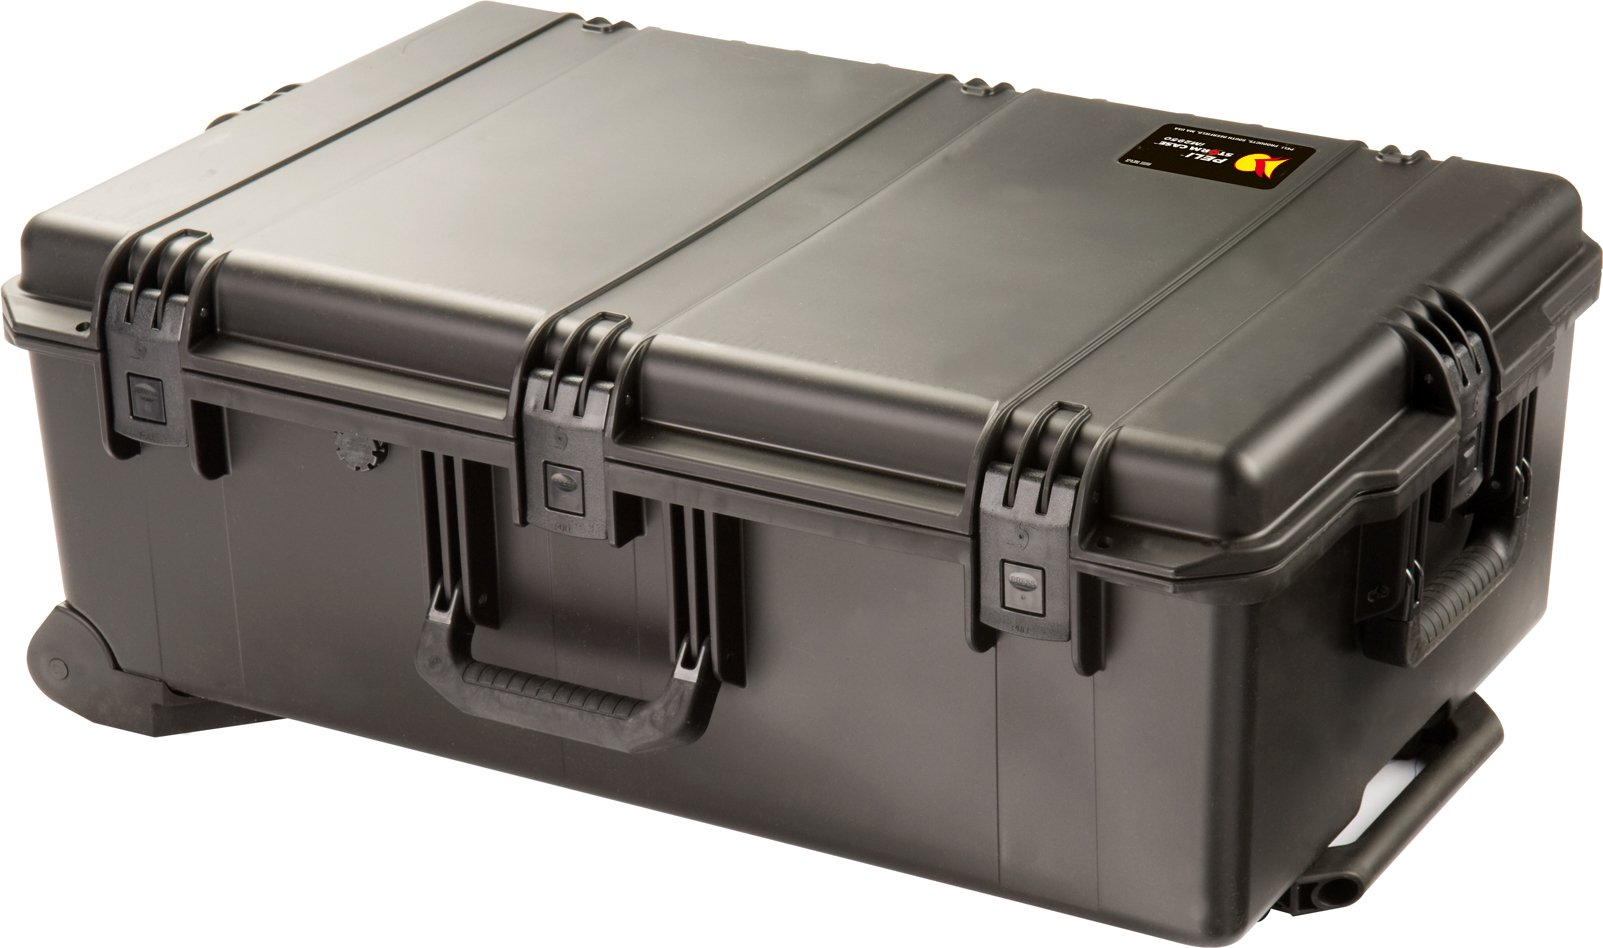 Waterproof Case (Dry Box) | Pelican Storm iM2950 Case With Foam (Black)